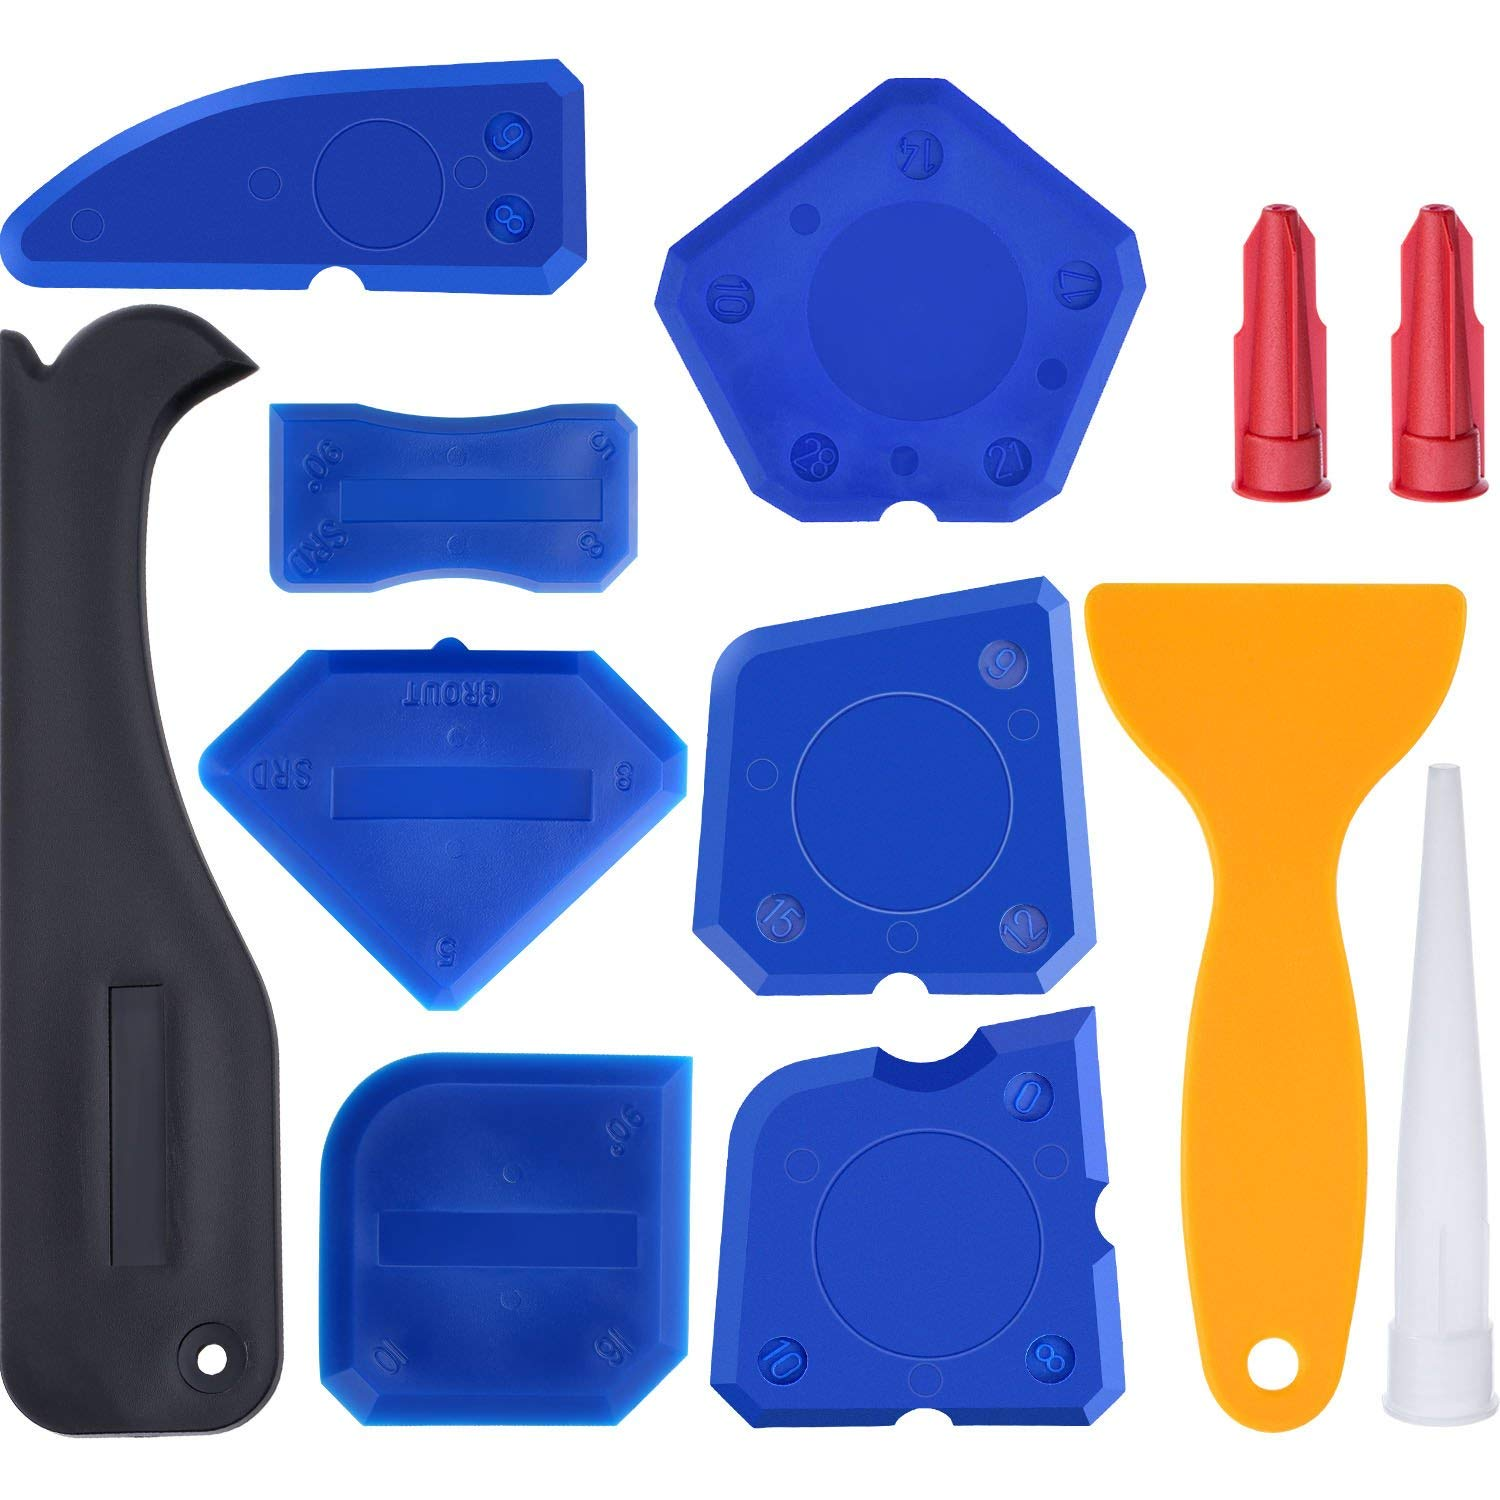 Caulking Tool Kit Silicone Sealant Finishing Removal Tool with Grout Silicone Scraper Caulk Remover and Caulk Nozzle and Caulk Caps Set for Bathroom Kitchen Room 12 pcs (blue)